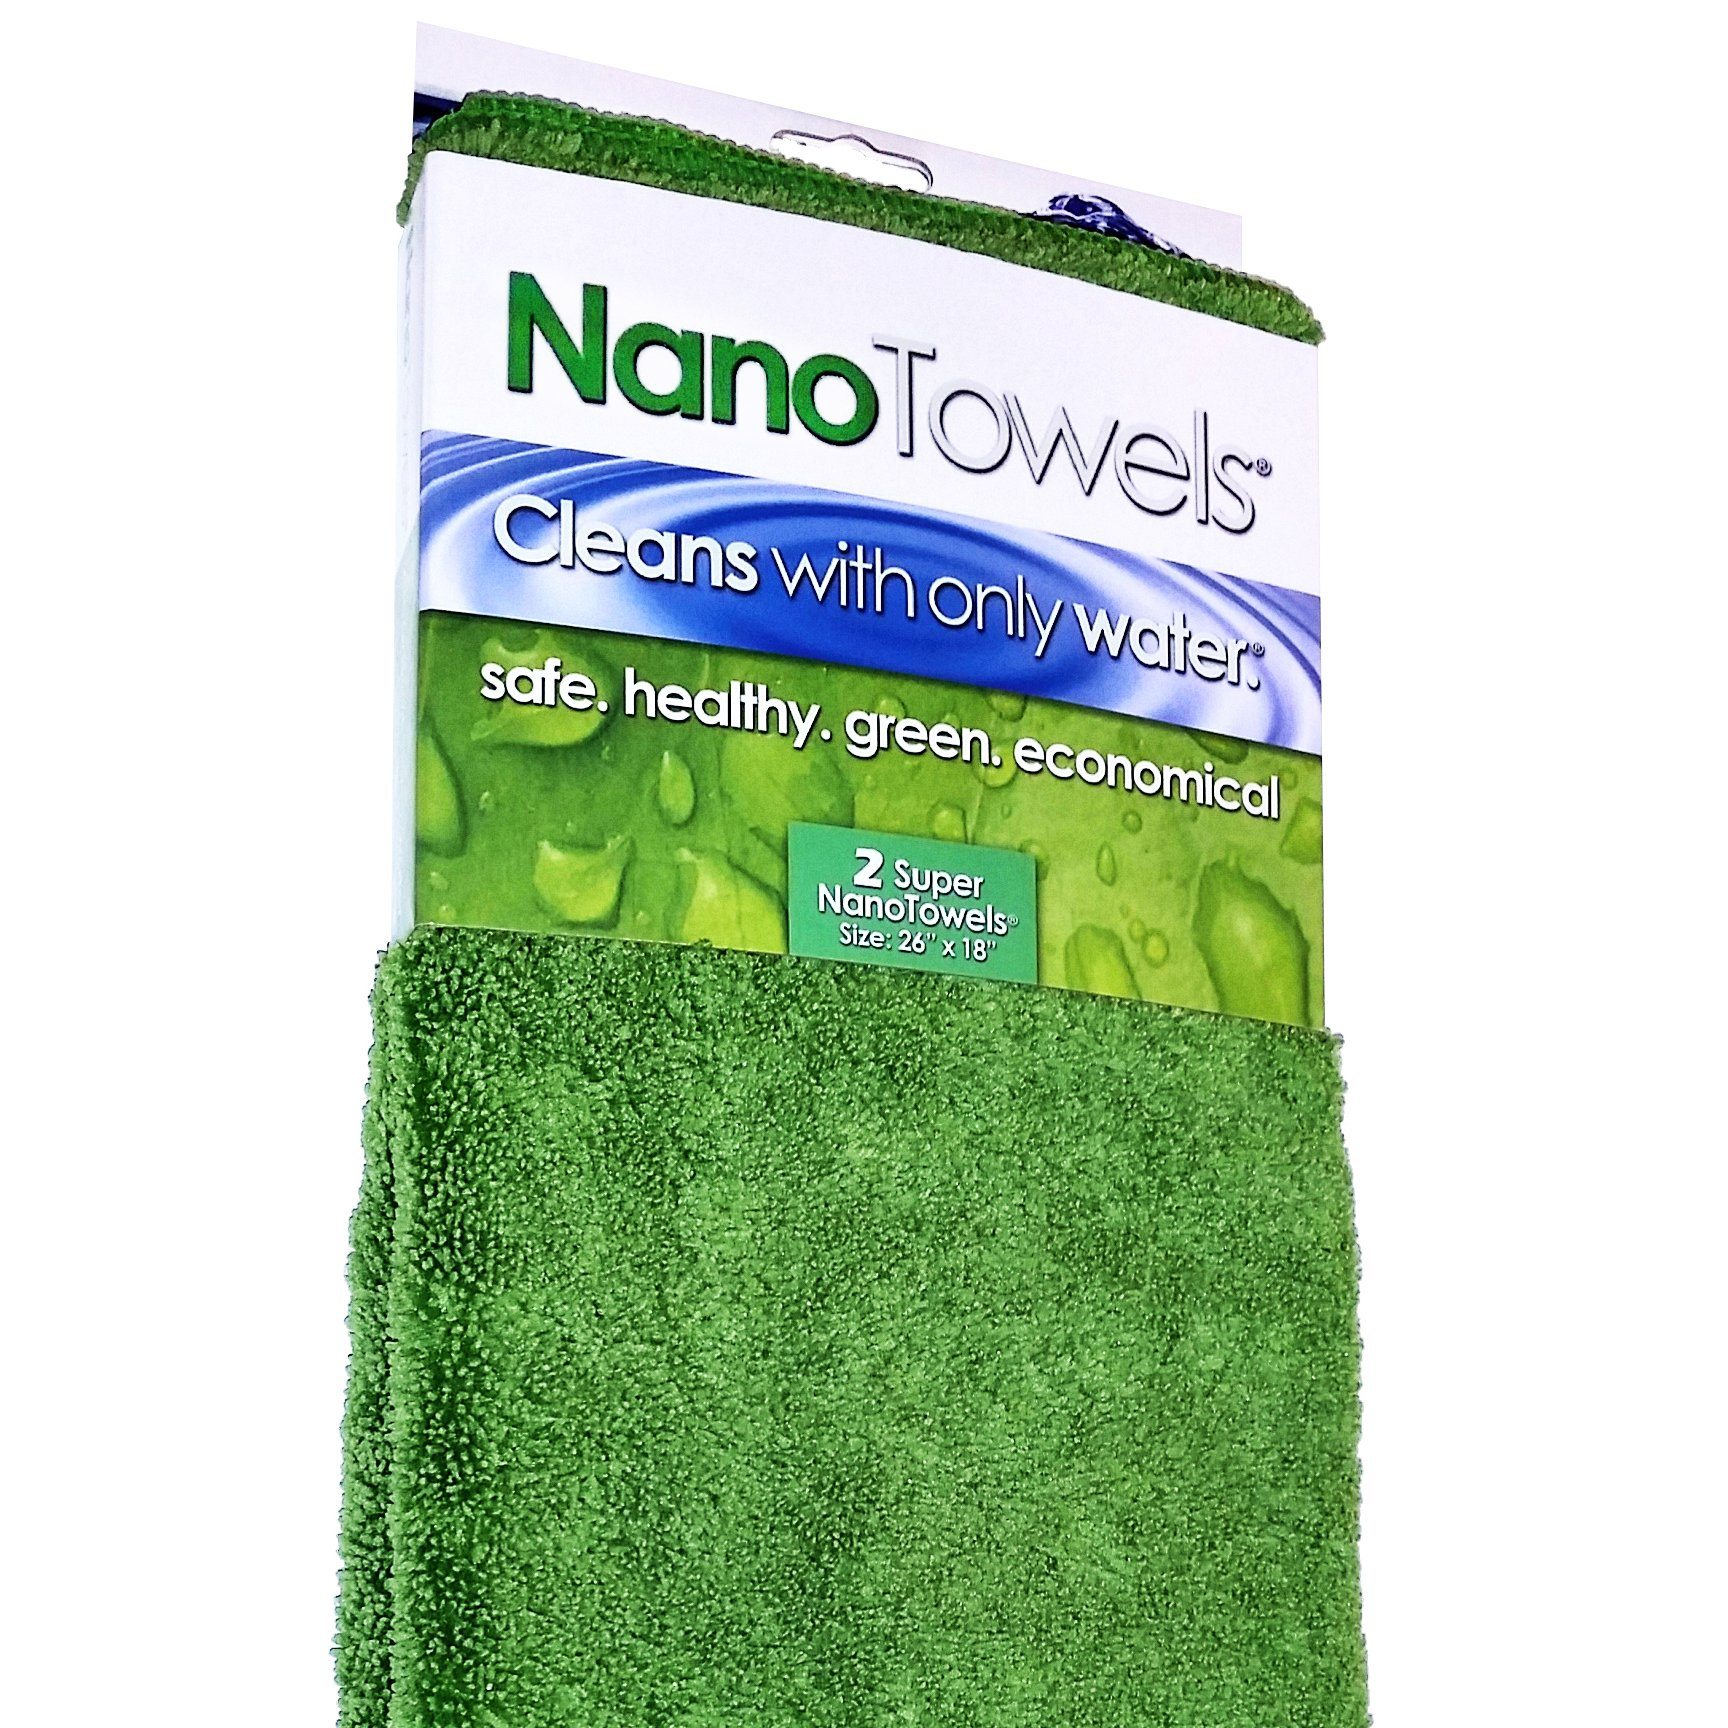 Life Miracle Nano Towels SUPERSIZED The Breakthrough Fabric That Replaces Paper Towels and Toxic Chemical Cleaners. Use As Bath Towels, Kitchen Towels, etc. All Purpose Cleaning Wipes 26x18 by Life Miracle (Image #1)